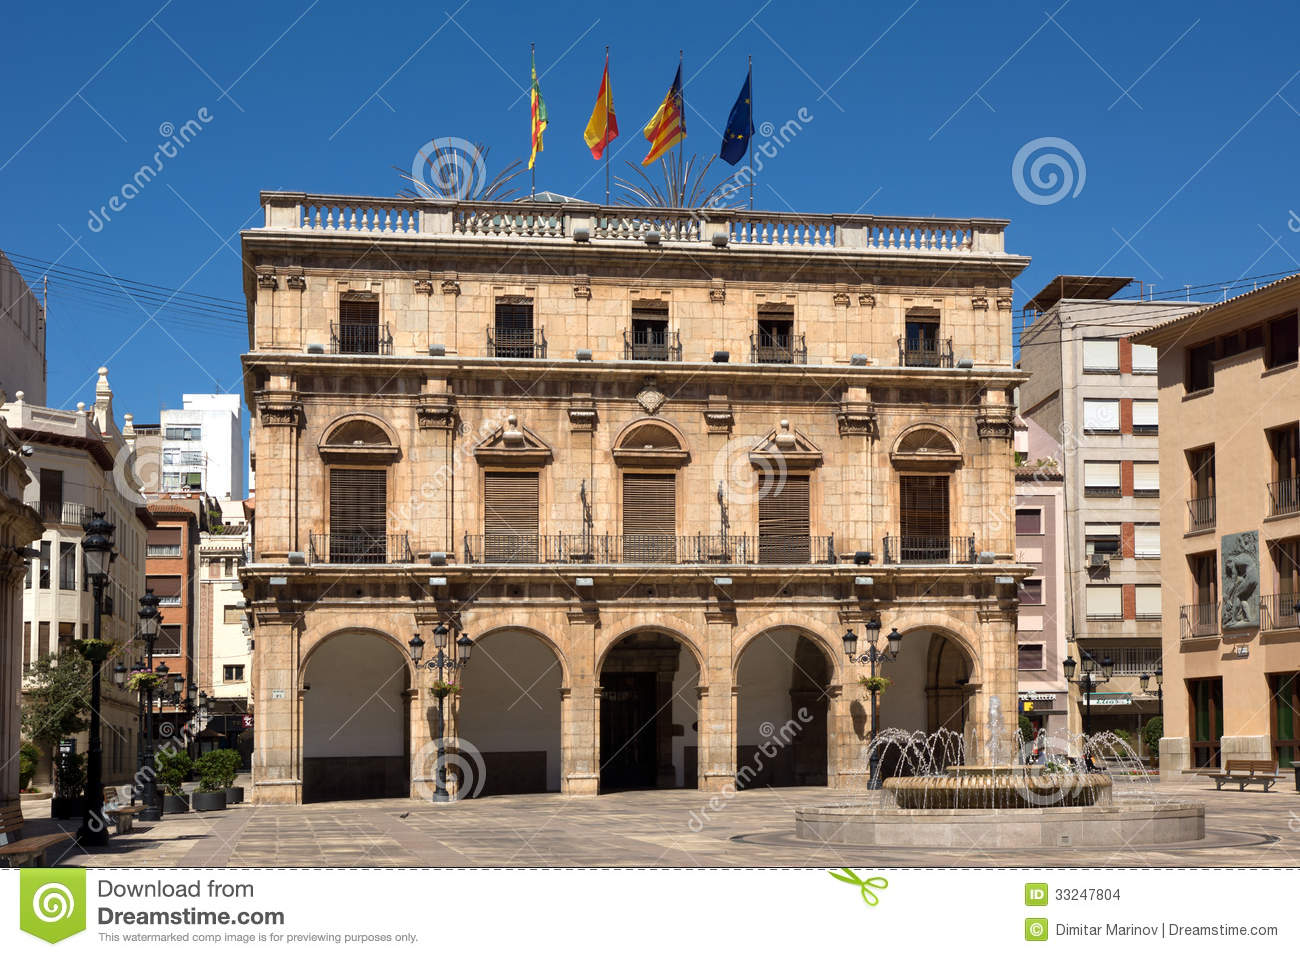 Castellon de la Plana Spain  city photos gallery : City hall of Castellon de la Plana, Spain.